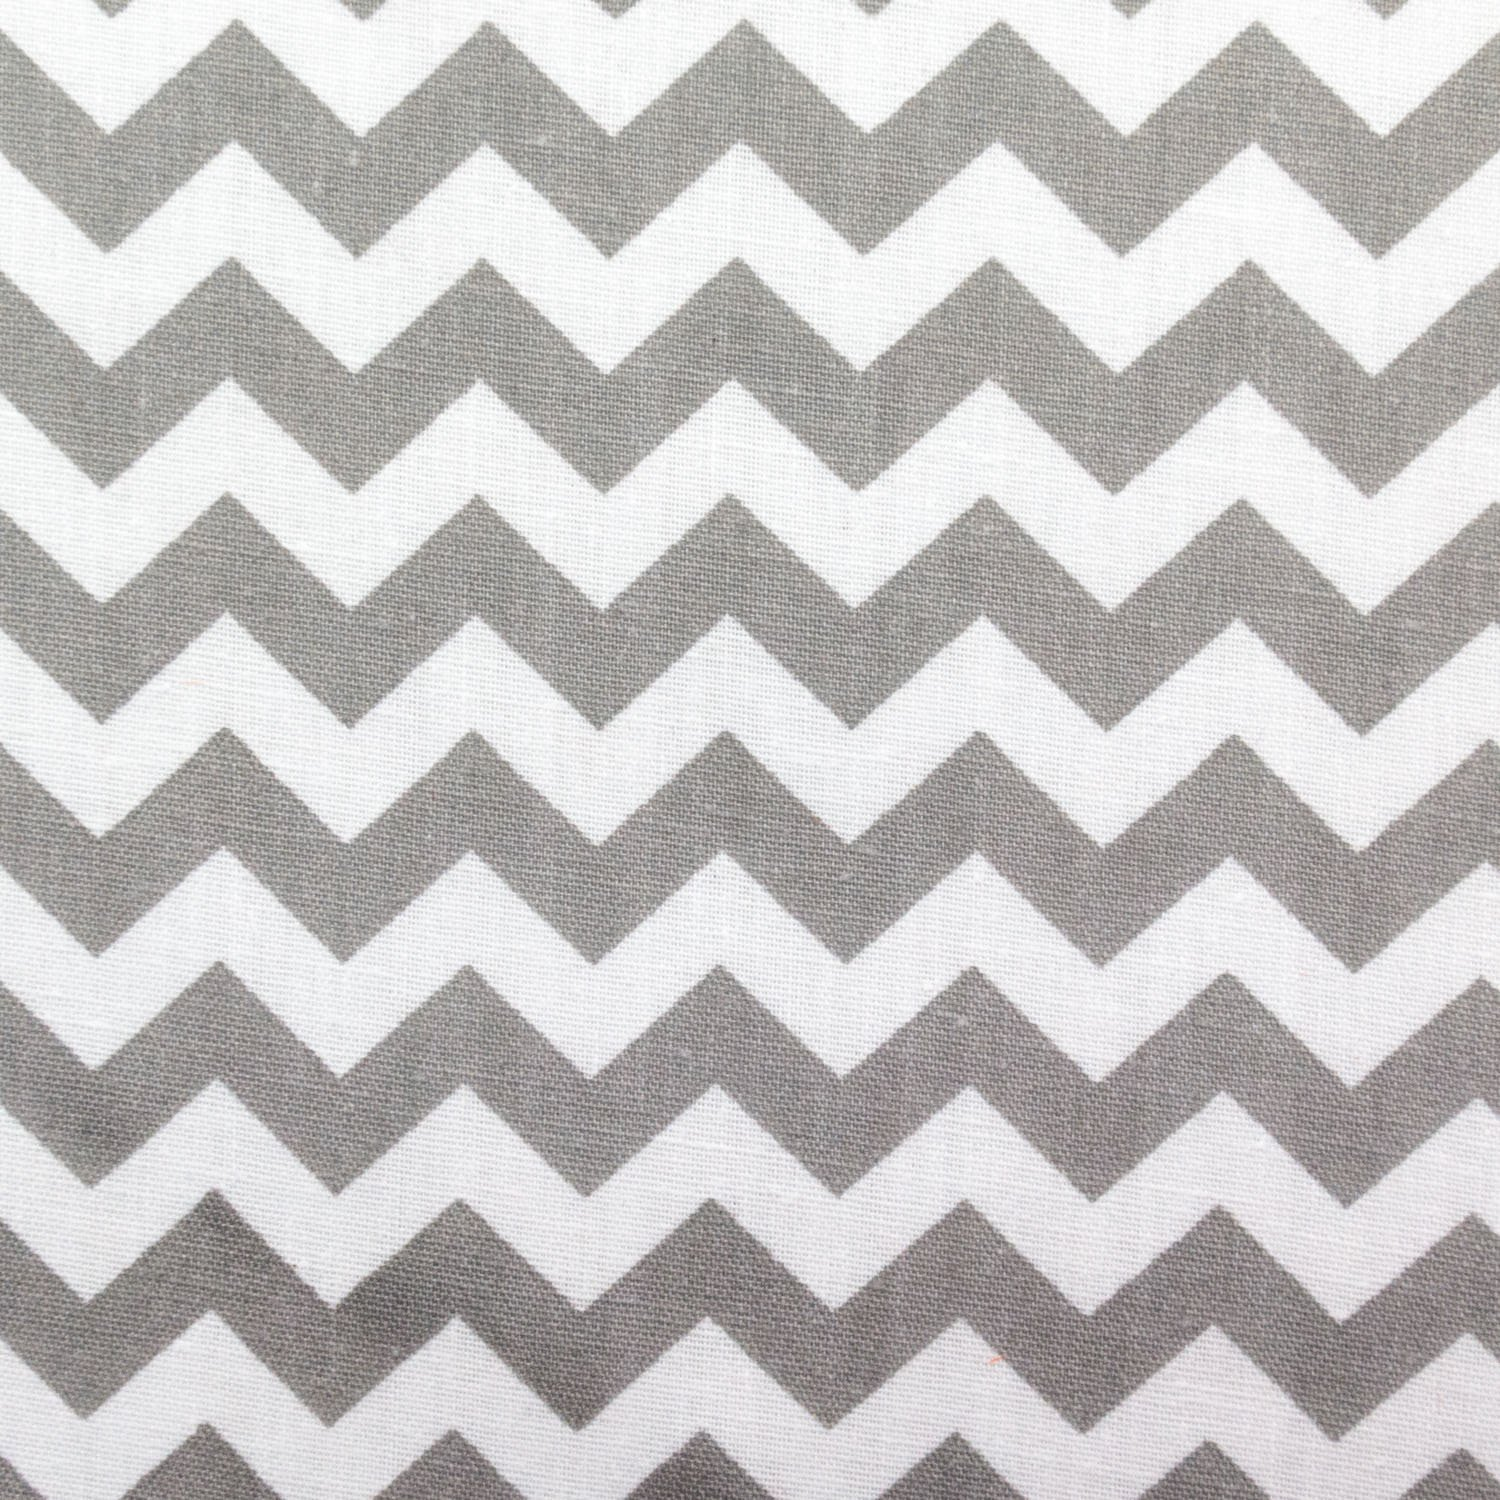 Small Chevron Poly Cotton Gray and White 60 Inch Fabric By the Yard (F.E.) by The Fabric Exchange   B00ZPZSTPI